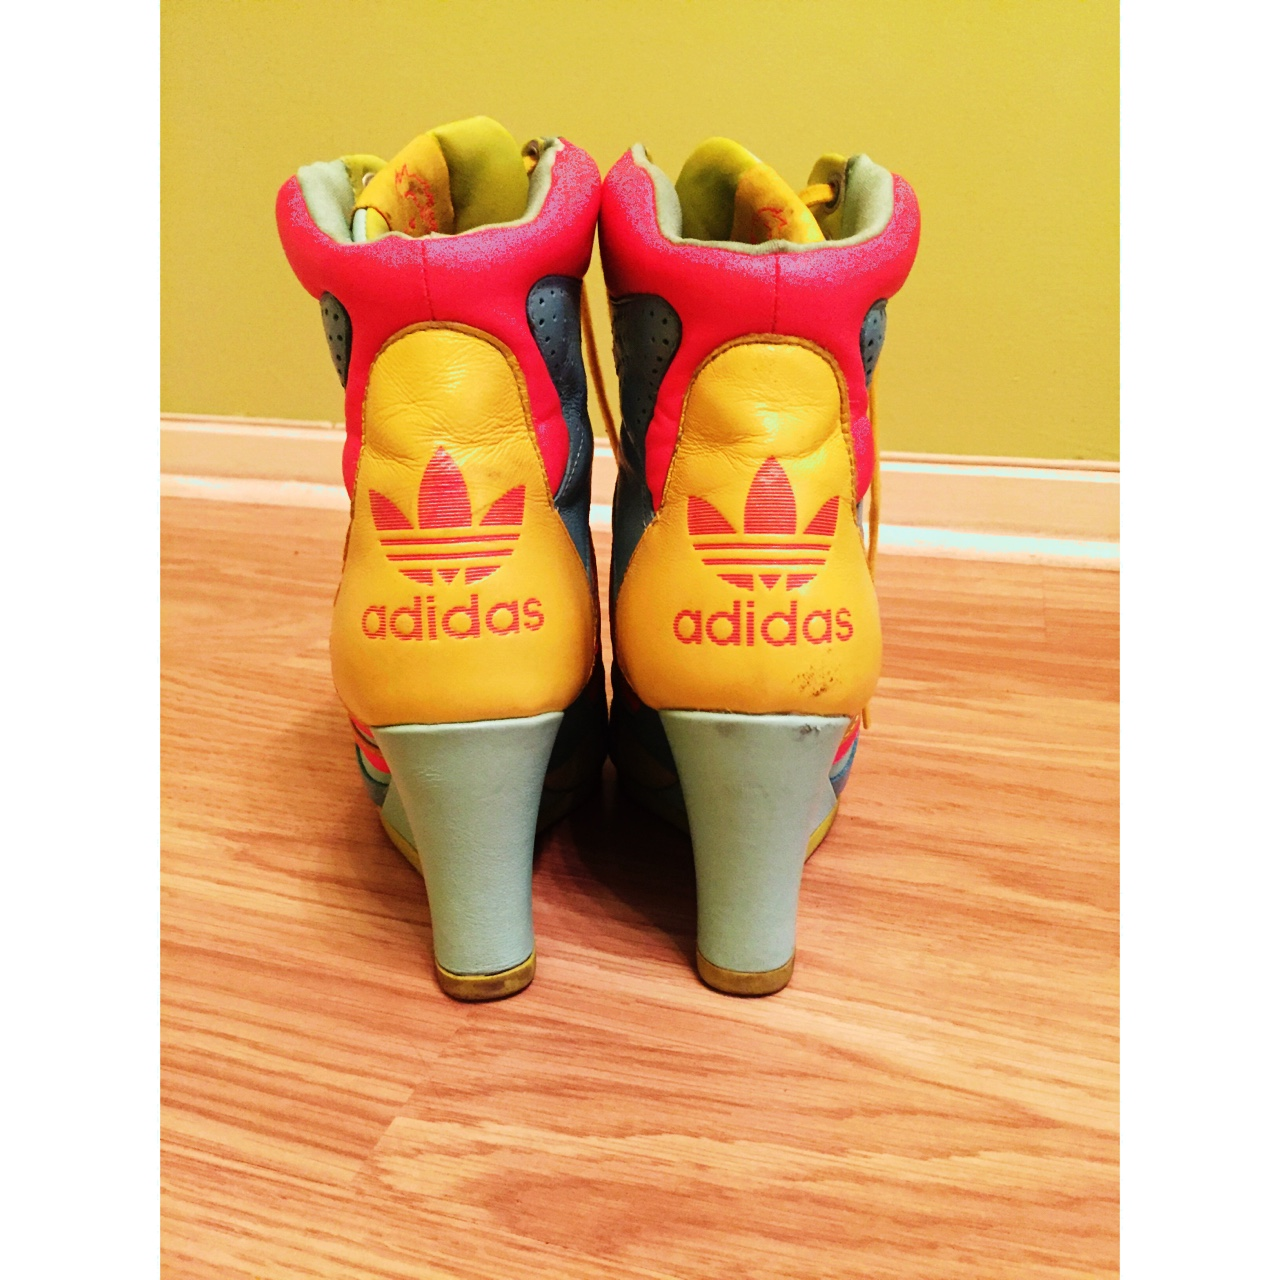 Adidas! Originals! Jeremy Scott high heel lace up Depop